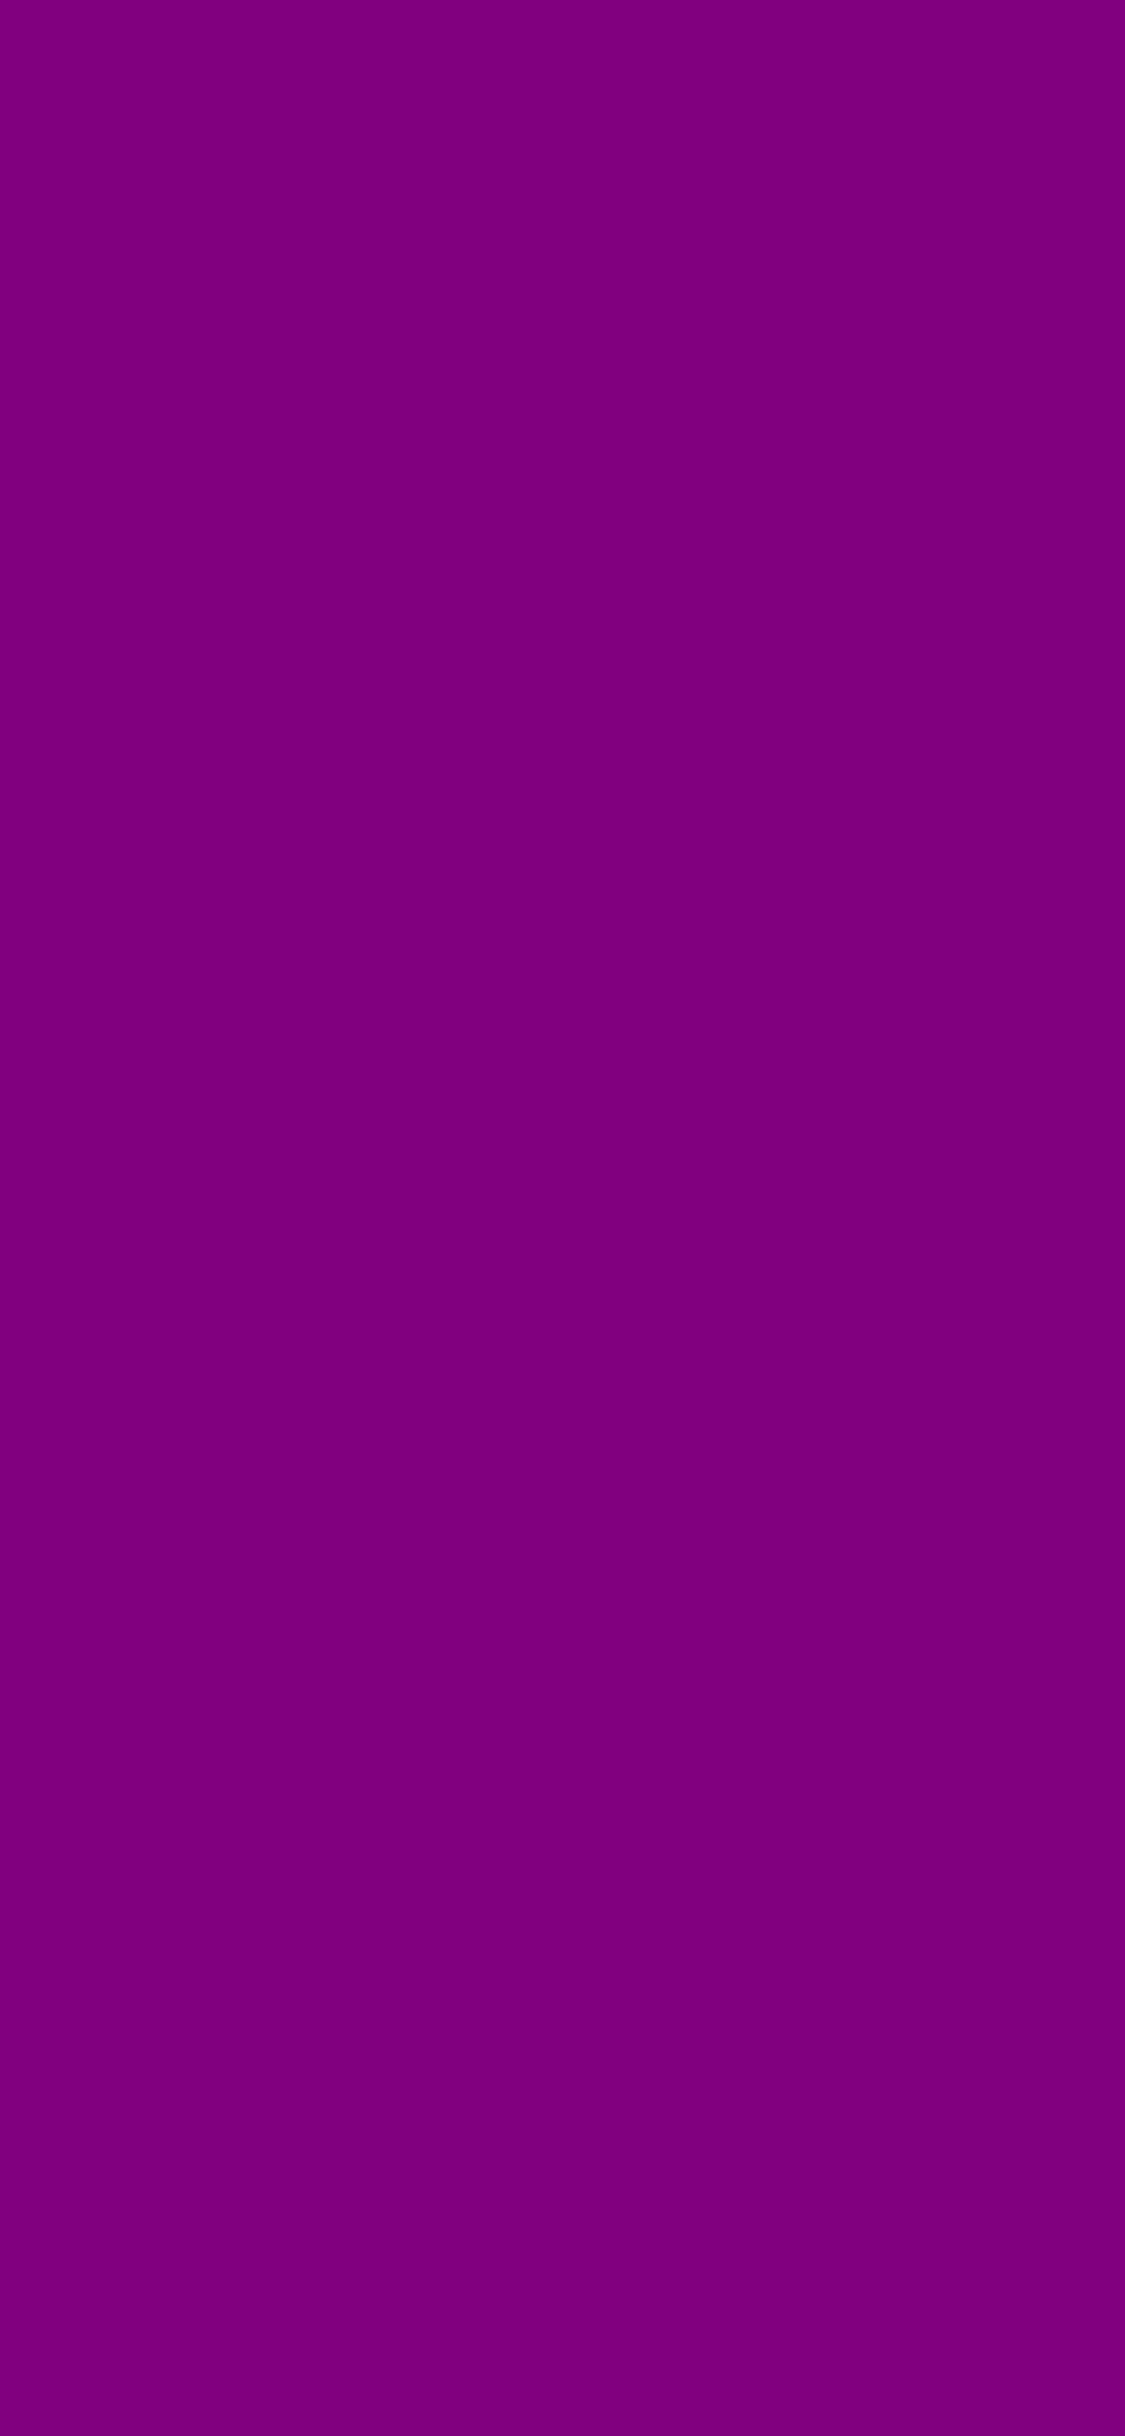 1125x2436 Purple Web Solid Color Background